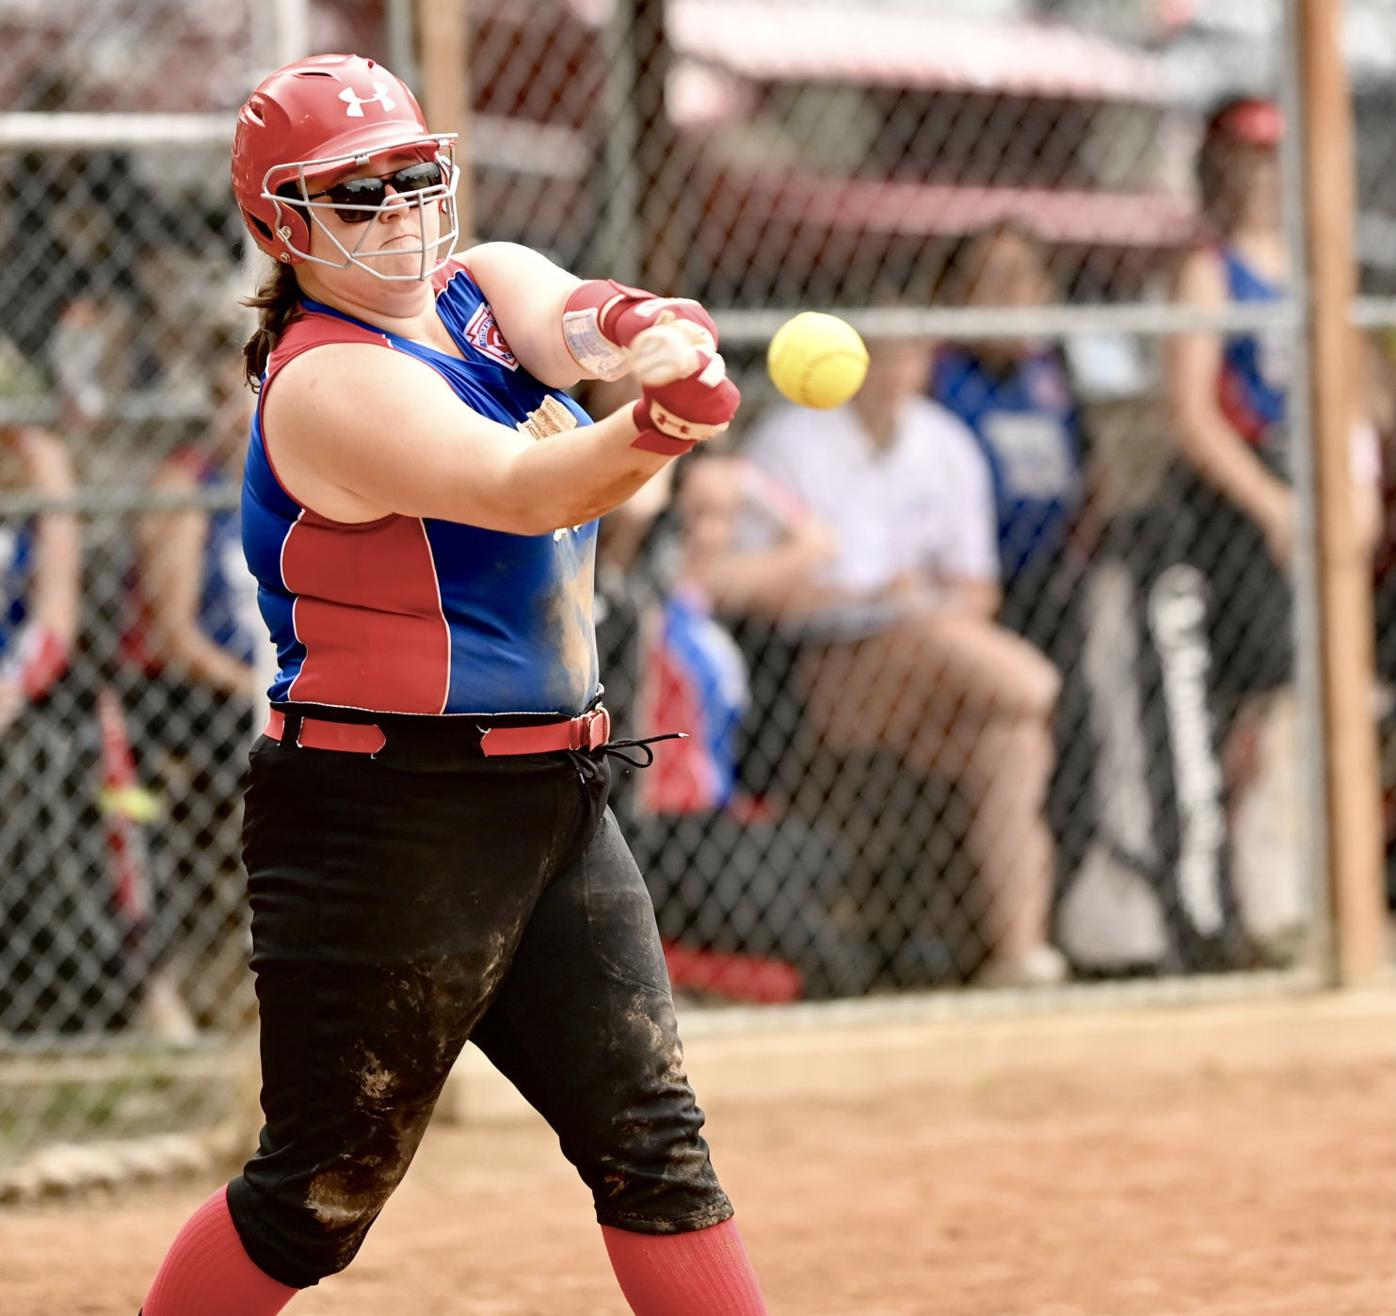 SOFTBALL: Section 6 13-16 game suspended